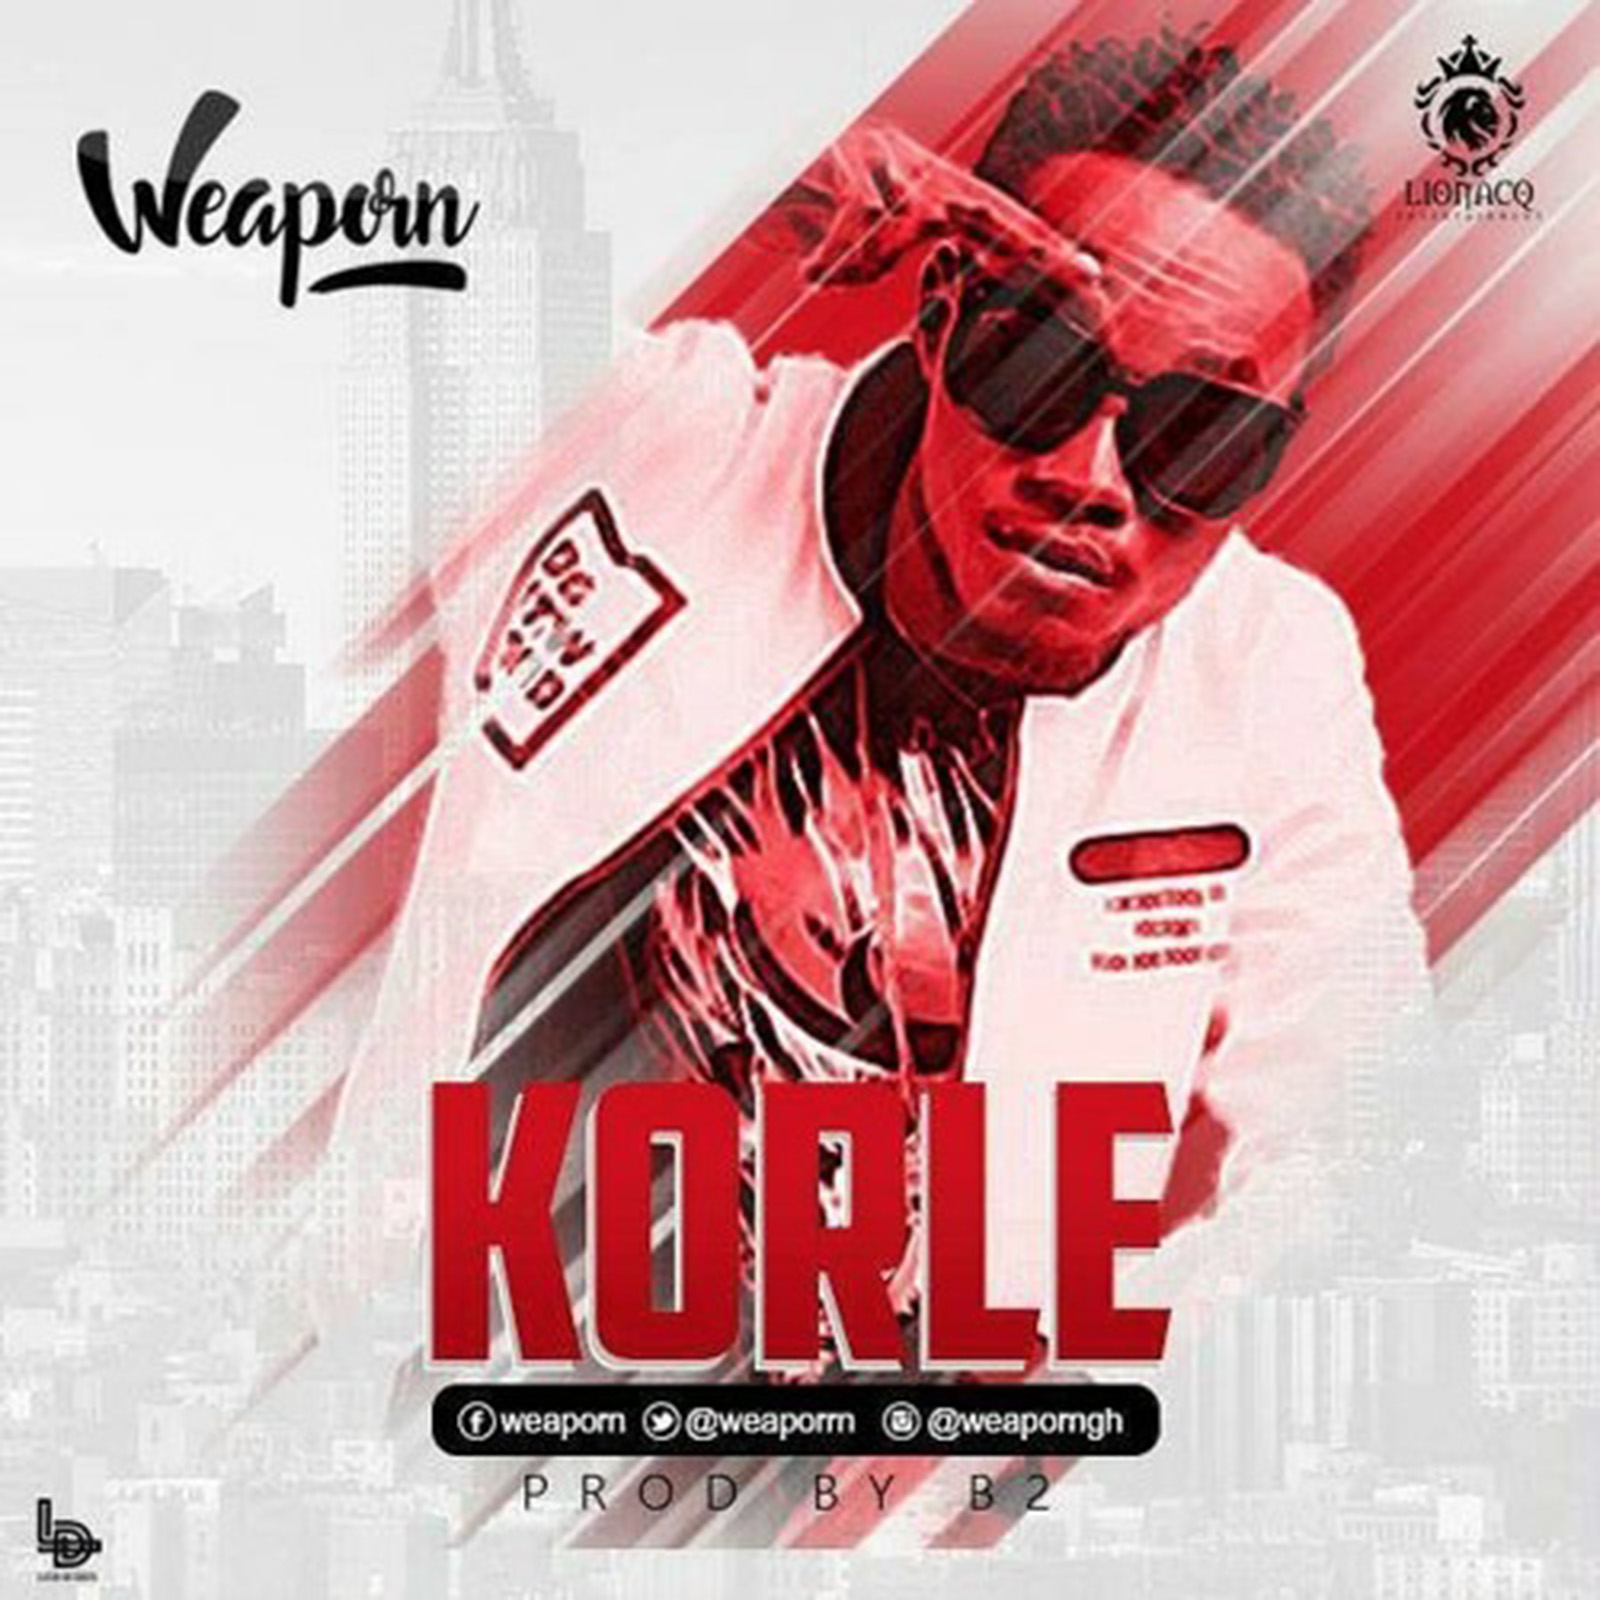 Korle by Weaporn